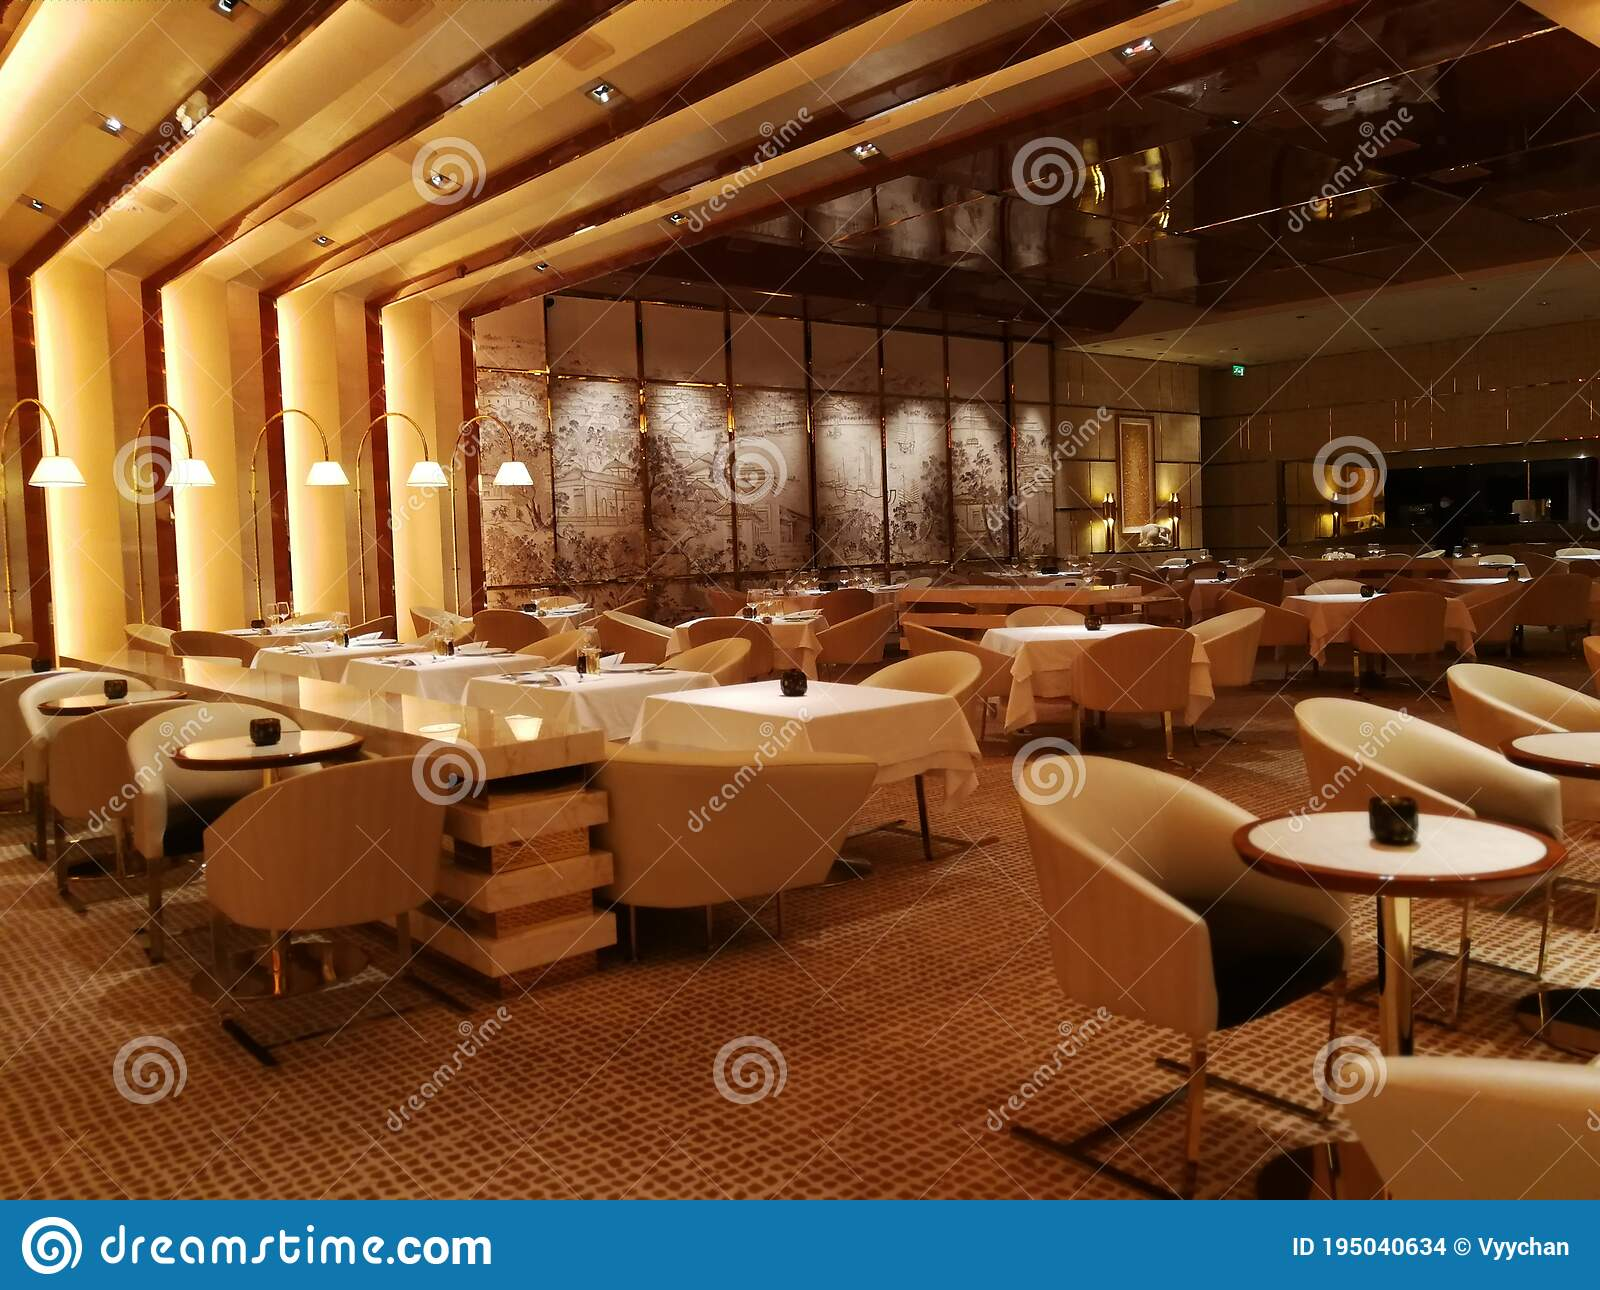 Exclusive Macau Wynn Palace Sw Steakhouse Restaurant Fine Dining Space Interior Design Luxury Lifestyle Prestigeous Environment Stock Photo Image Of Awesome Facebook 195040634